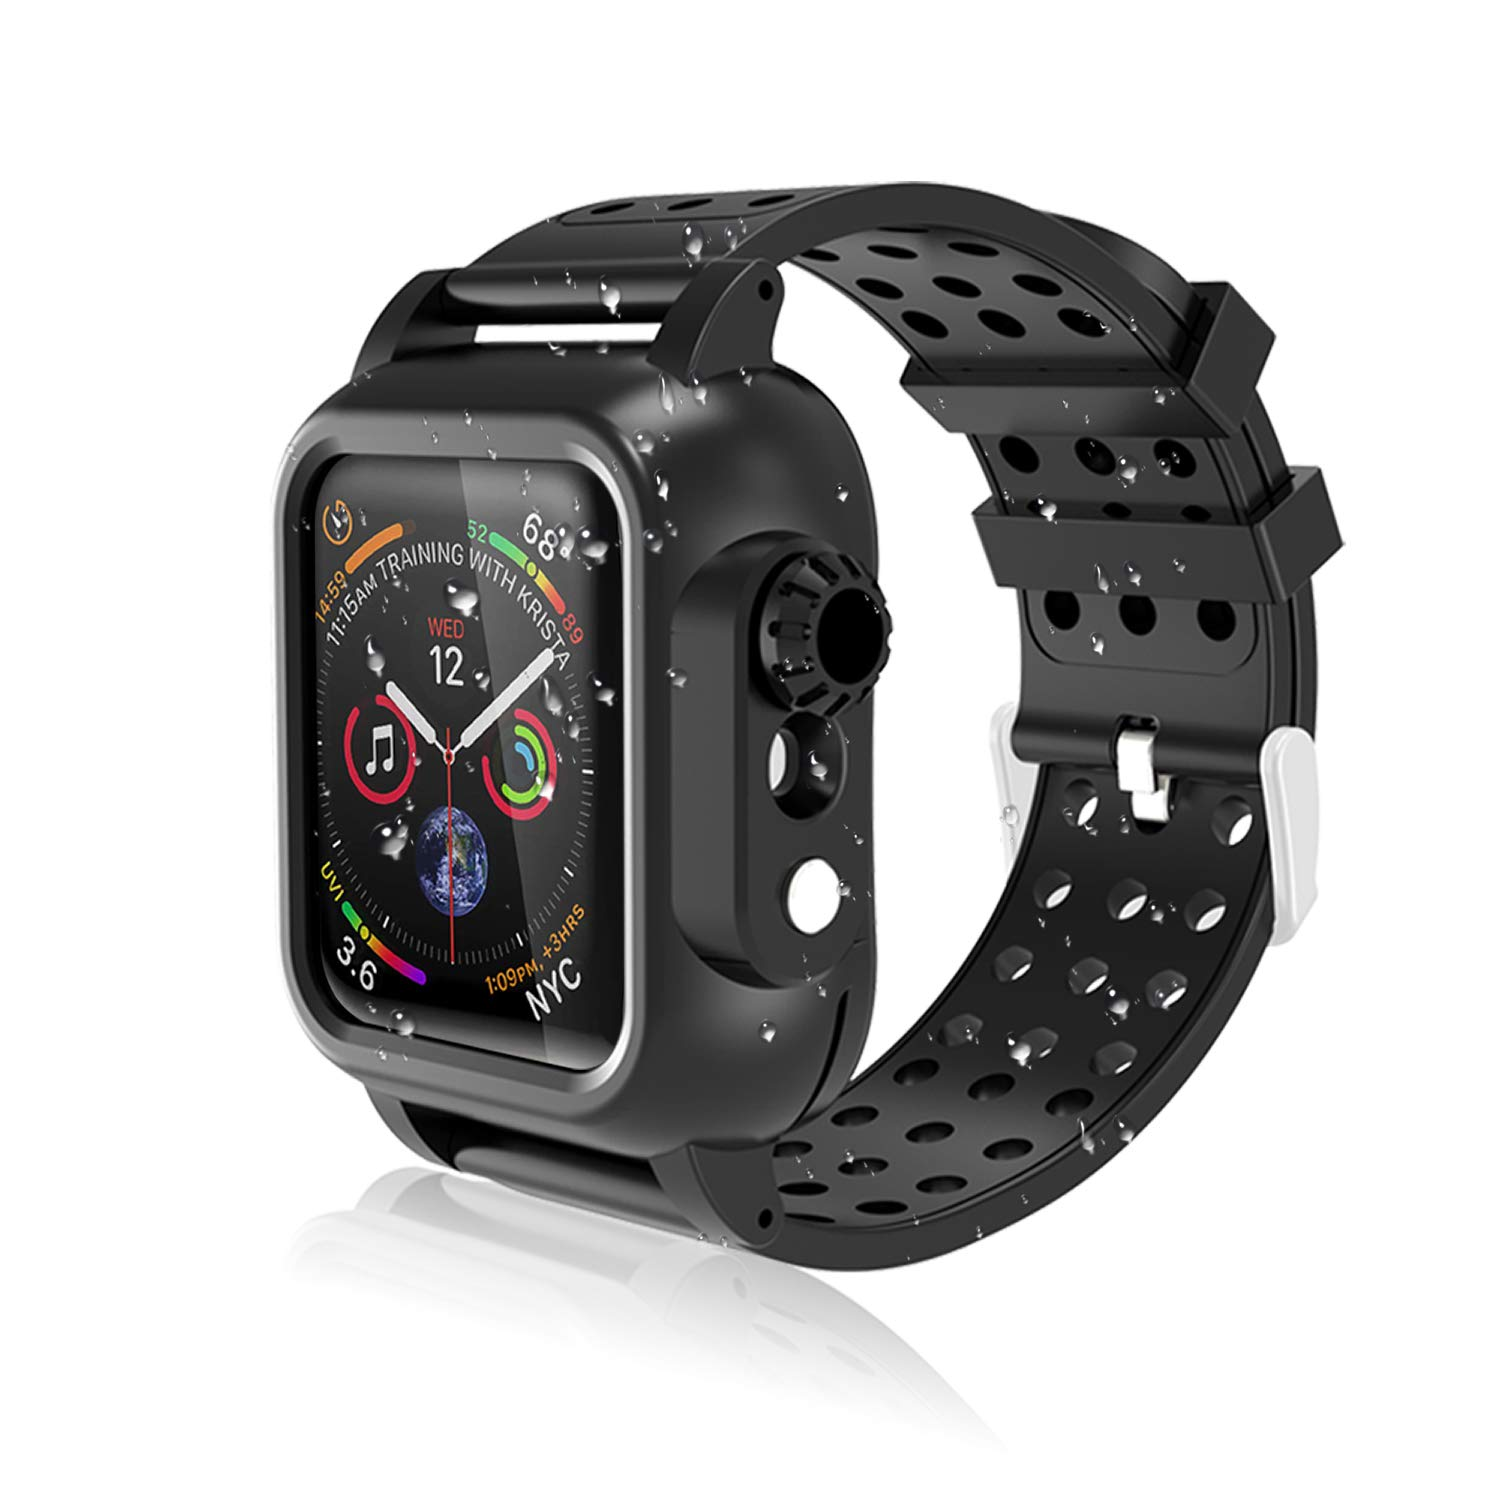 Realproof Waterproof Apple Watch Series 4 Case 40mm with Premium Soft Silicone Band Built-in Screen Protector, iwatch Protective Case Slim Thin Drop Shock Proof Apple Watch Case for Men Women Girls by OWKEY